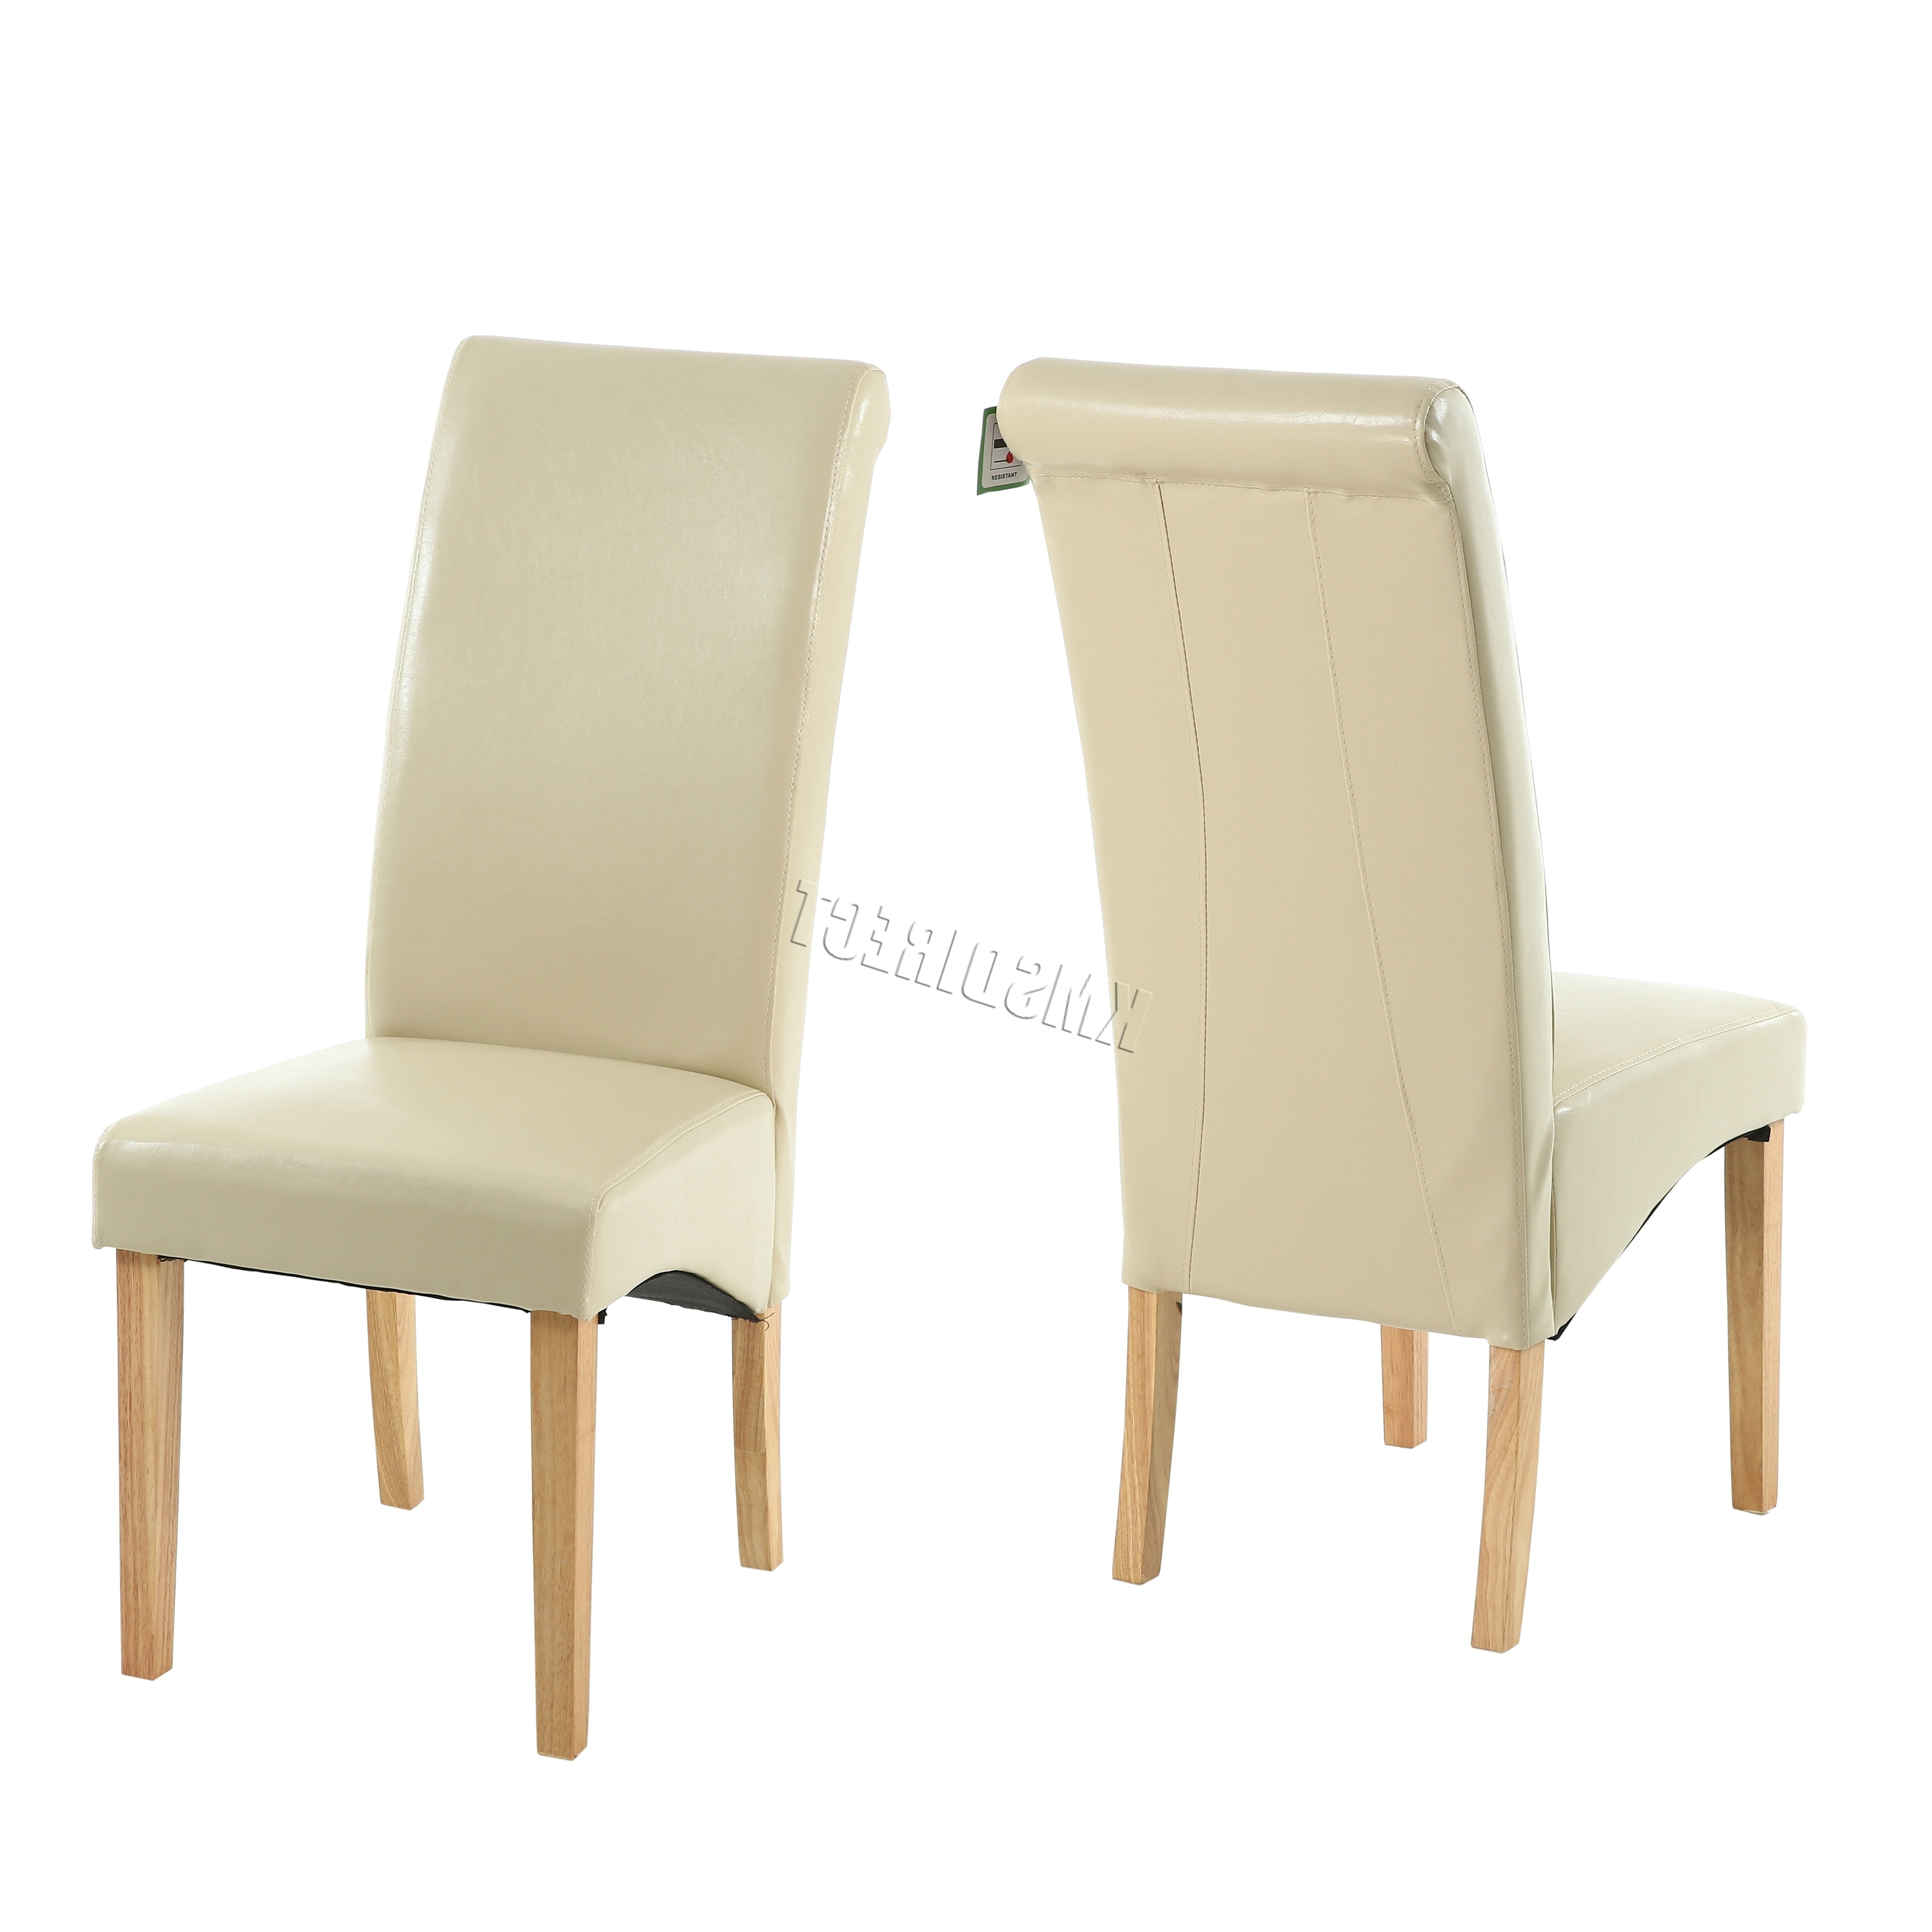 Best And Newest New Cream Faux Leather Dining Chairs Roll Top Scroll High Four Chair With Cream Faux Leather Dining Chairs (View 11 of 25)